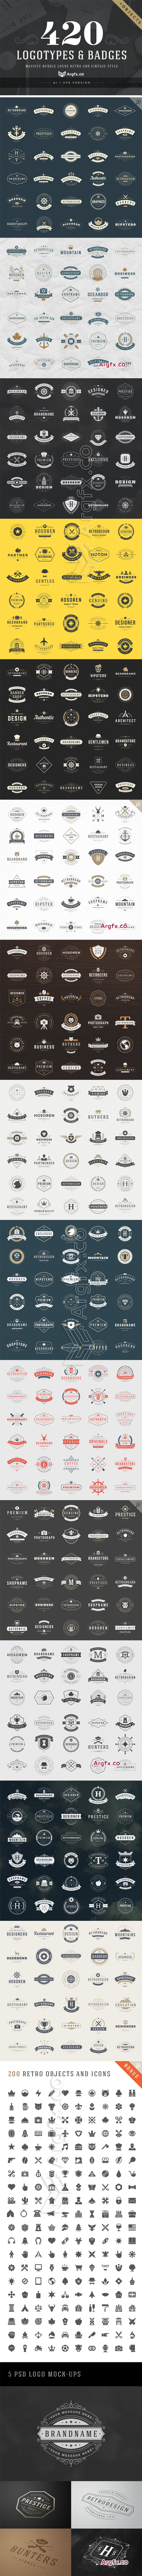 CreativeMarket - 420 Vintage Logotypes and Badges 221794